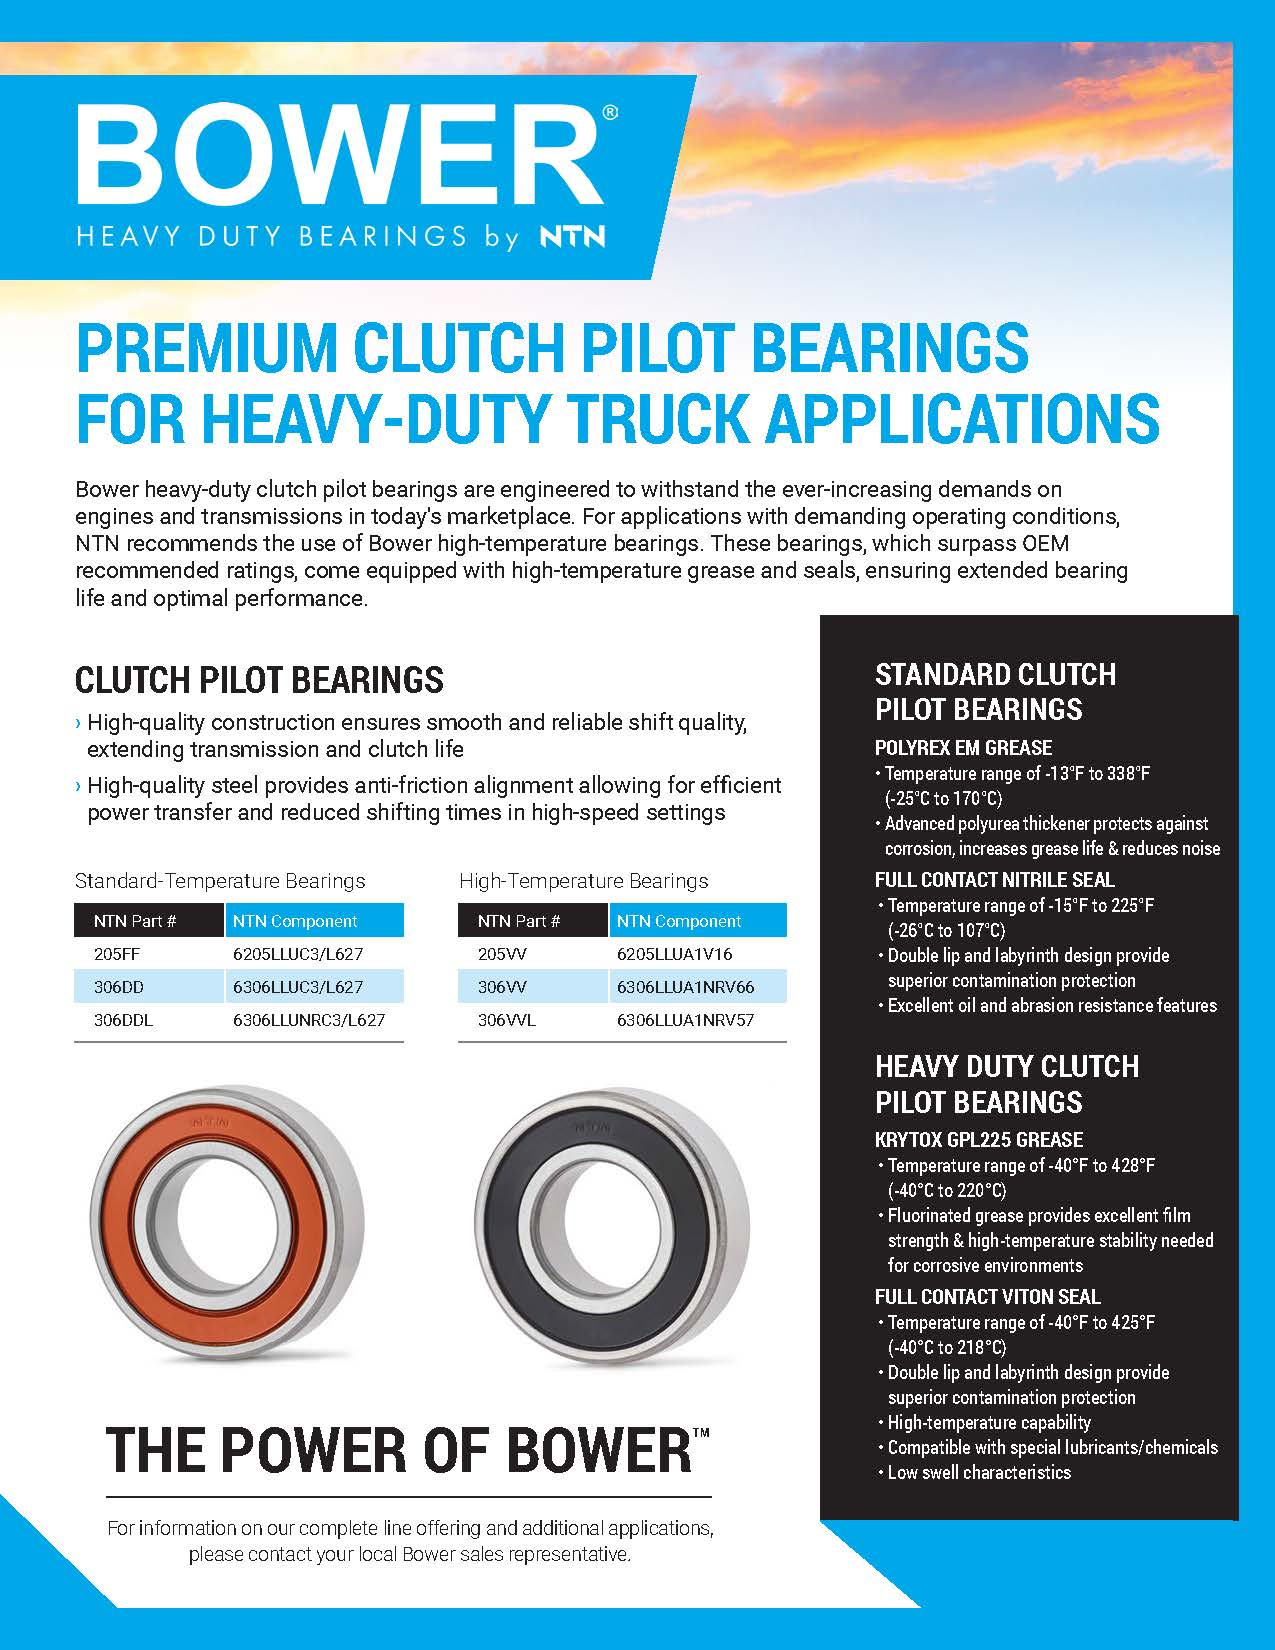 Bower ClutchPilotBearings E lr Page 1 1